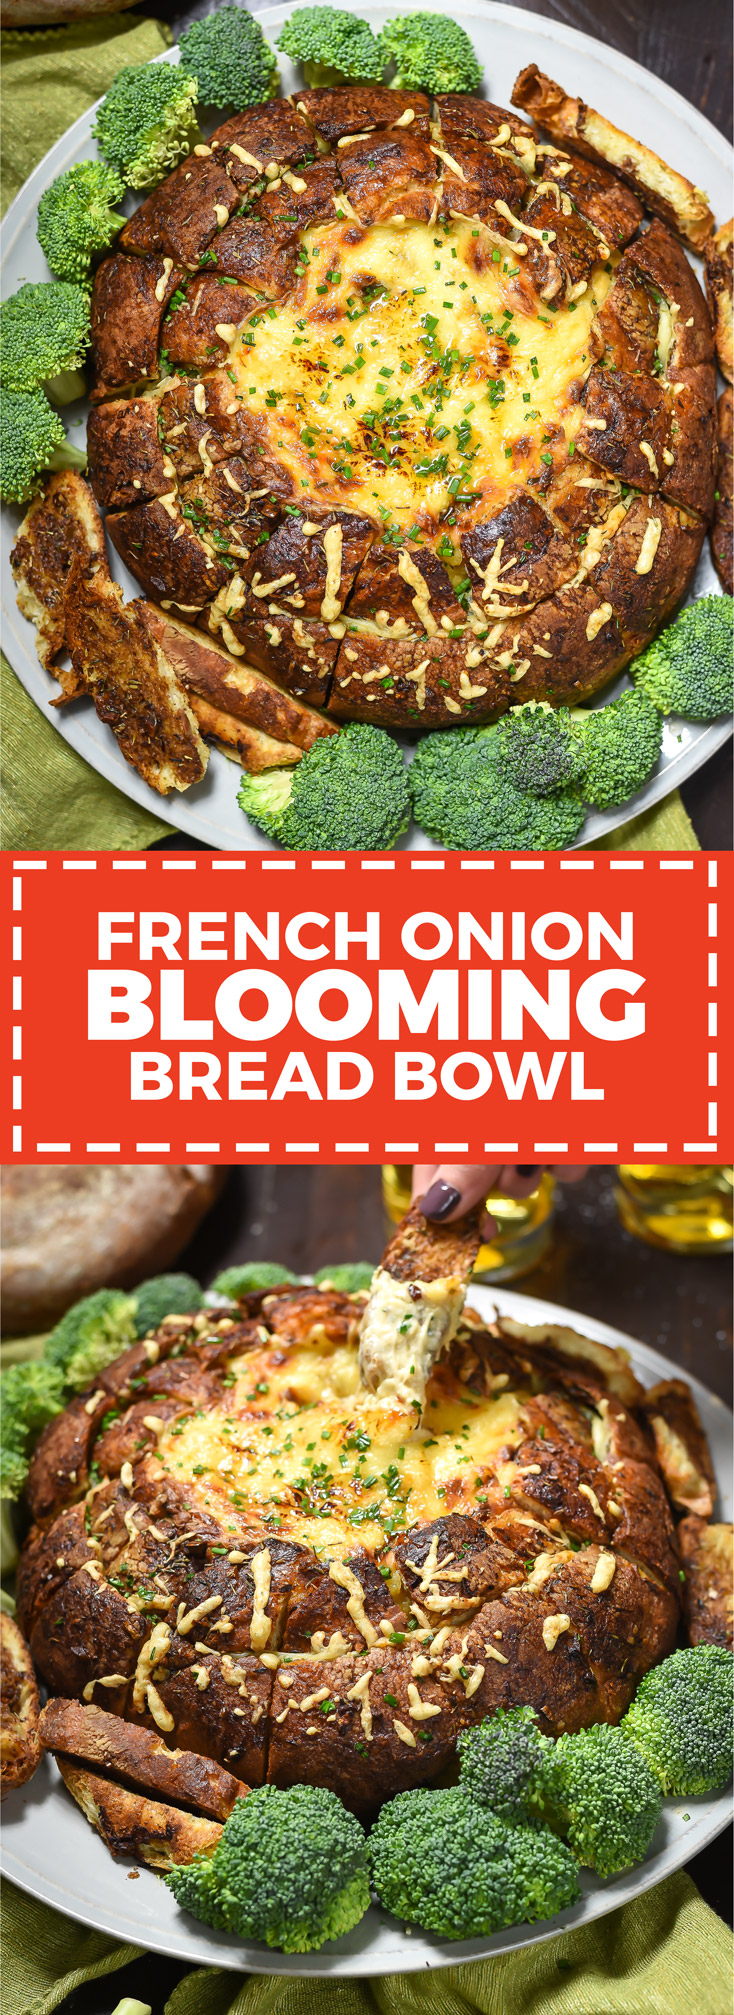 French Onion Blooming Bread Bowl. This cheesy, beefy, caramelized-onion loaded loaf is basically a fondue-ified version of French Onion Soup. | hostthetoast.com